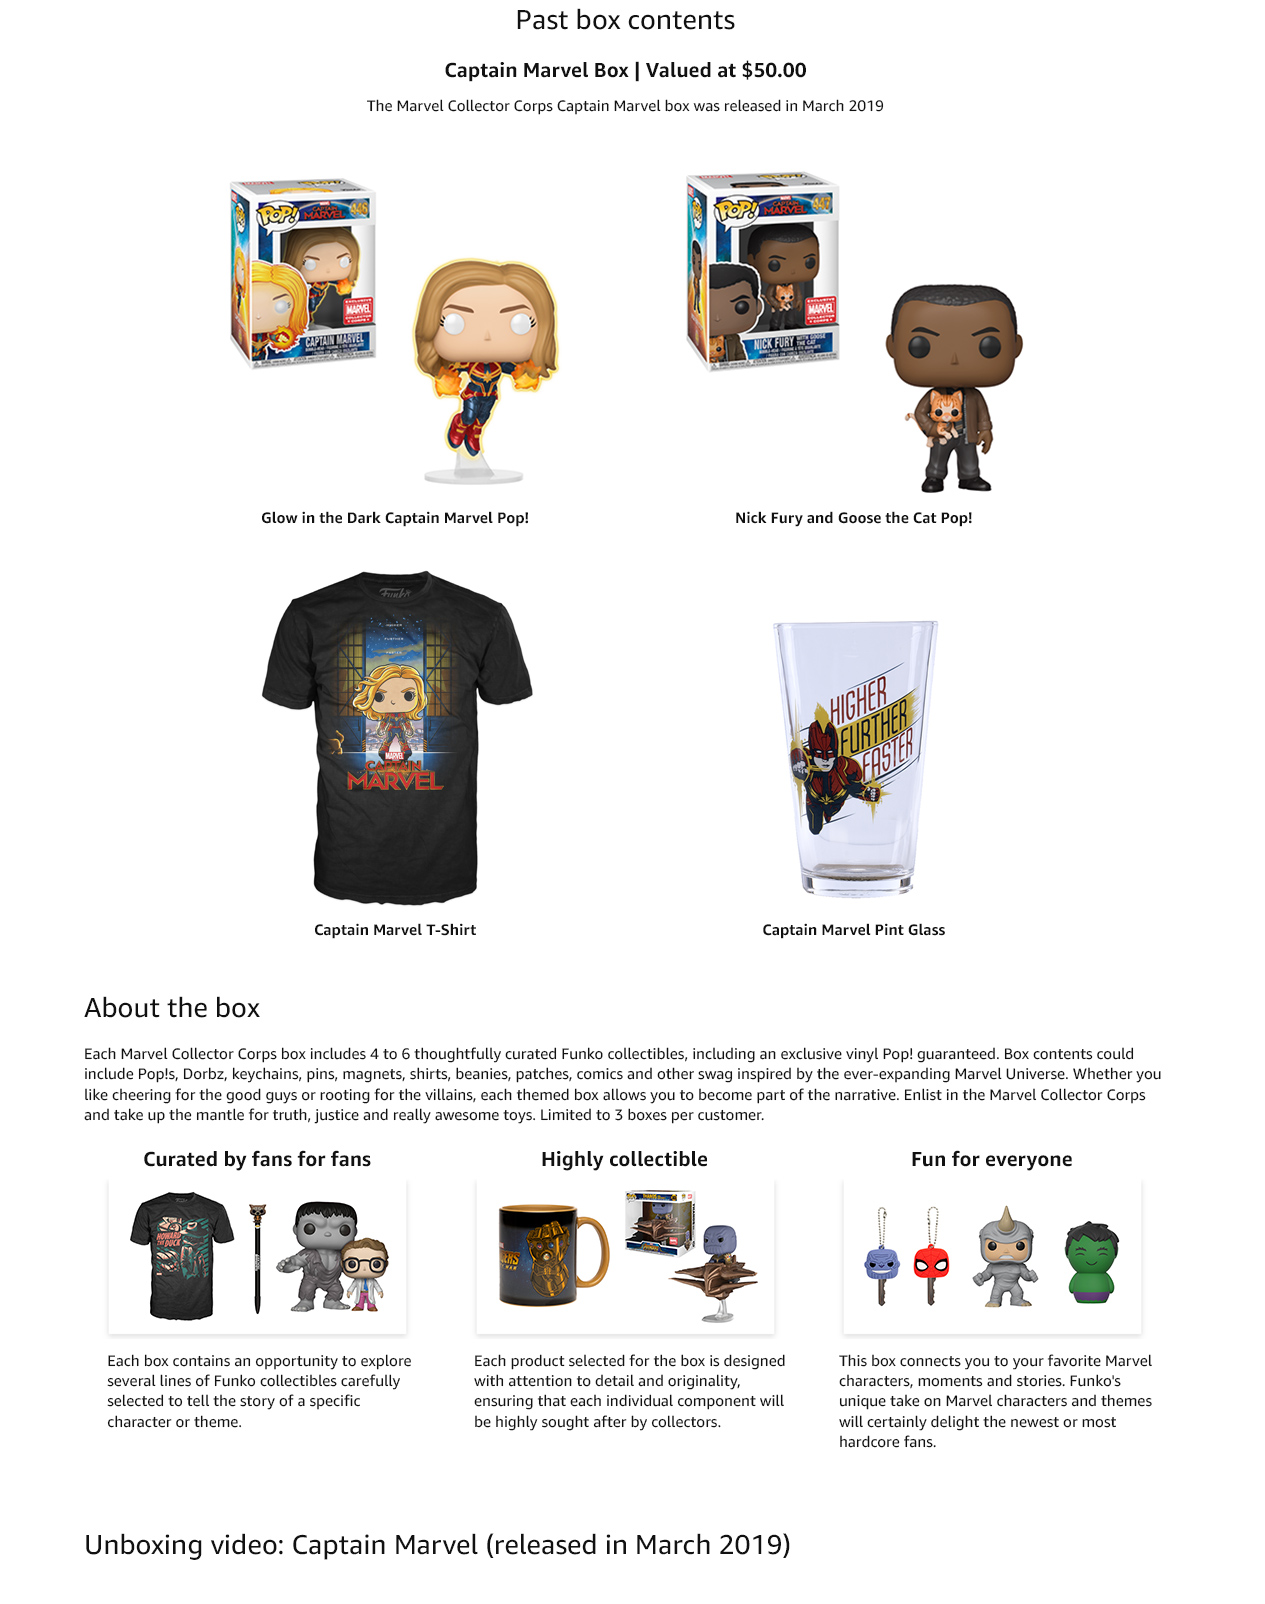 Each Marvel Collector Corps box includes 4 to 6 thoughtfully curated Funko collectibles, including an exclusive vinyl Pop! guaranteed. Box contents could include Pop!s, Dorbz, keychains, pins, magnets, shirts, beanies, patches, comics and other swag inspired by the ever-expanding Marvel Universe. Whether you like cheering for the good guys or rooting for the villains, each themed box allows you to become part of the narrative. Enlist in the Marvel Collector Corps and take up the mantle for truth, justice and really awesome toys. Limited to 3 boxes per customer.